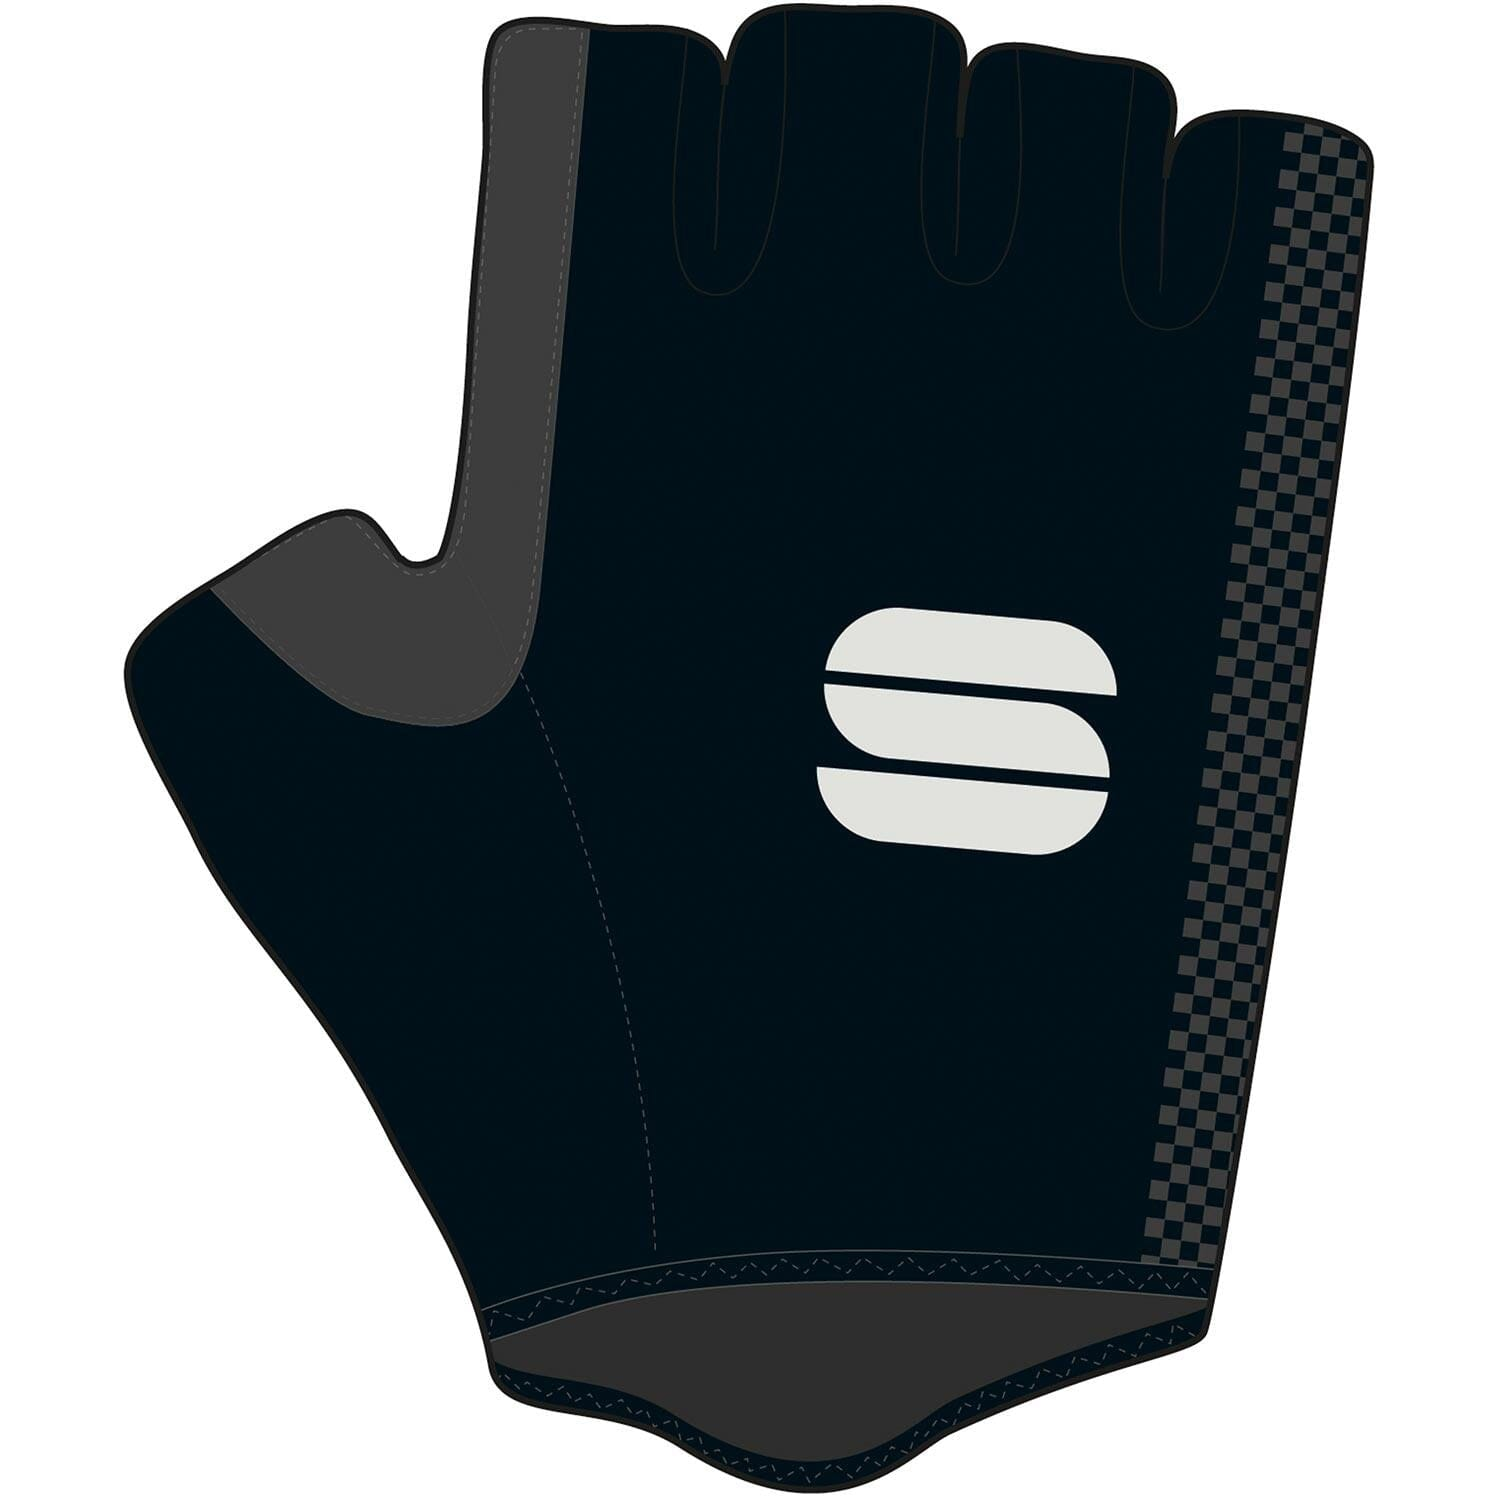 Sportful-Sportful Race Gloves-Black-XS-SF210360021-saddleback-elite-performance-cycling